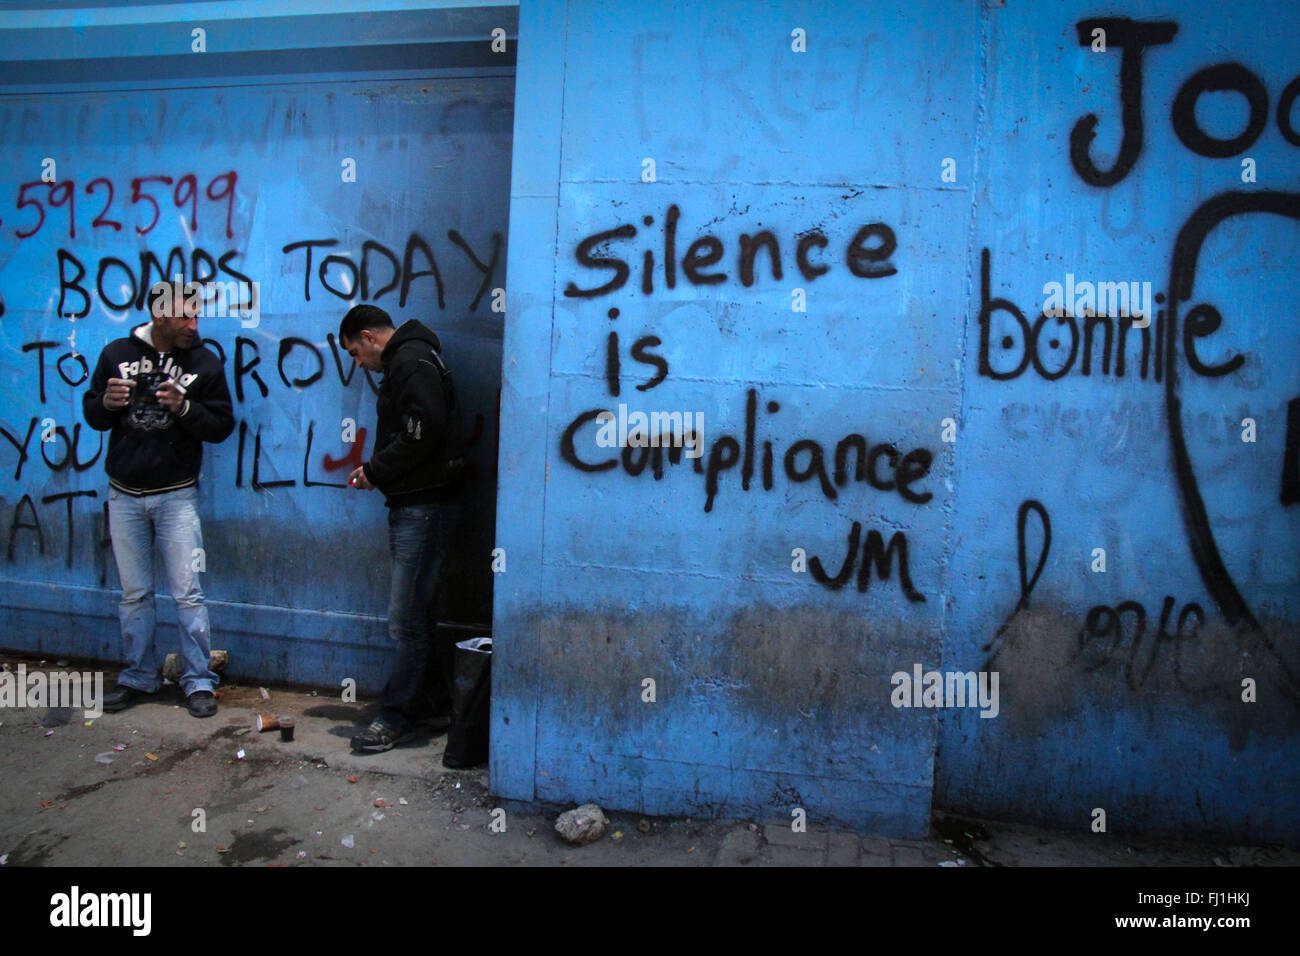 Palestine - Bethlehem checkpoint 300 and West Bank wall - Palestinian Occupied Territories - Stock Image